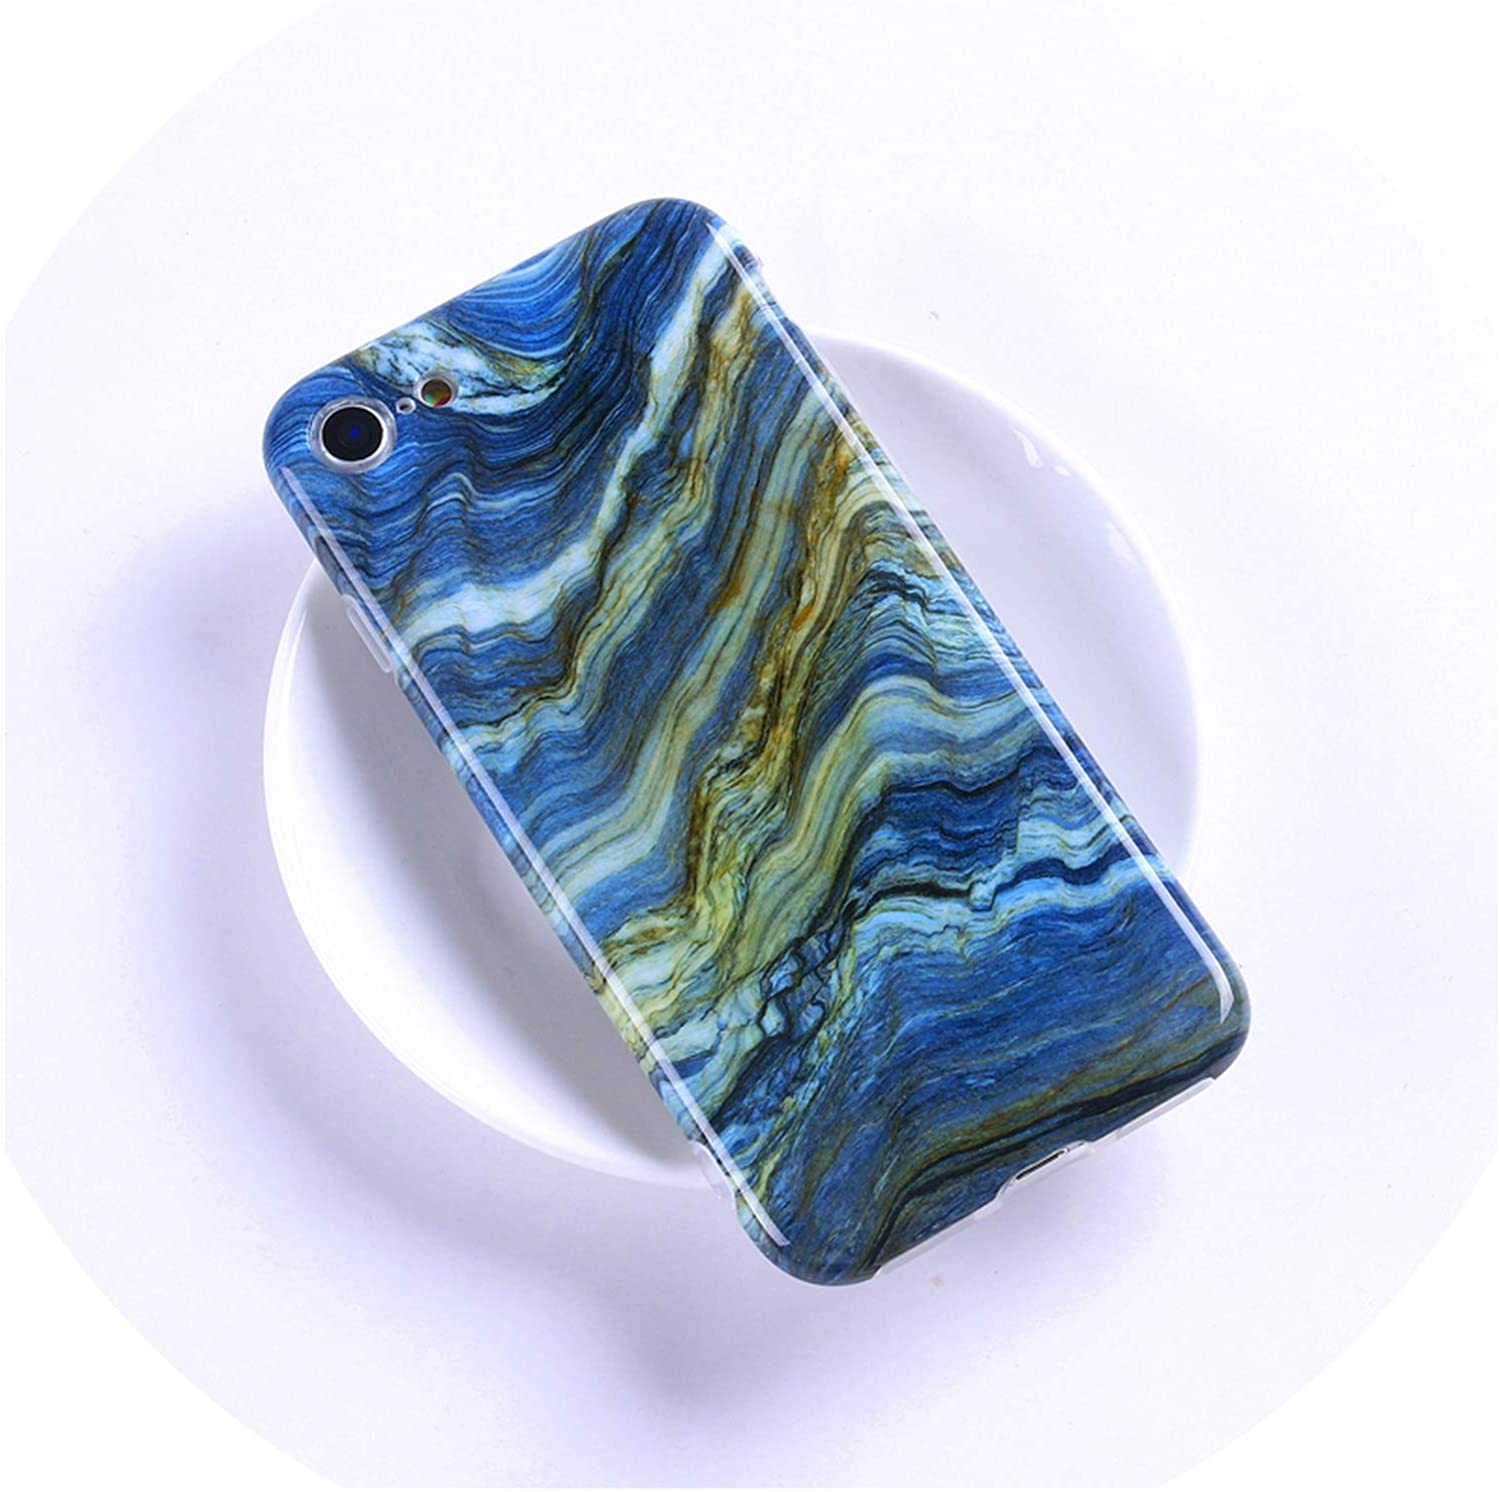 Marble Phone Case for iPhone 7 Case for iPhone X 7 6 6S 8 Plus Xs Max Xr Case Cover,A0024,for iPhone Xr